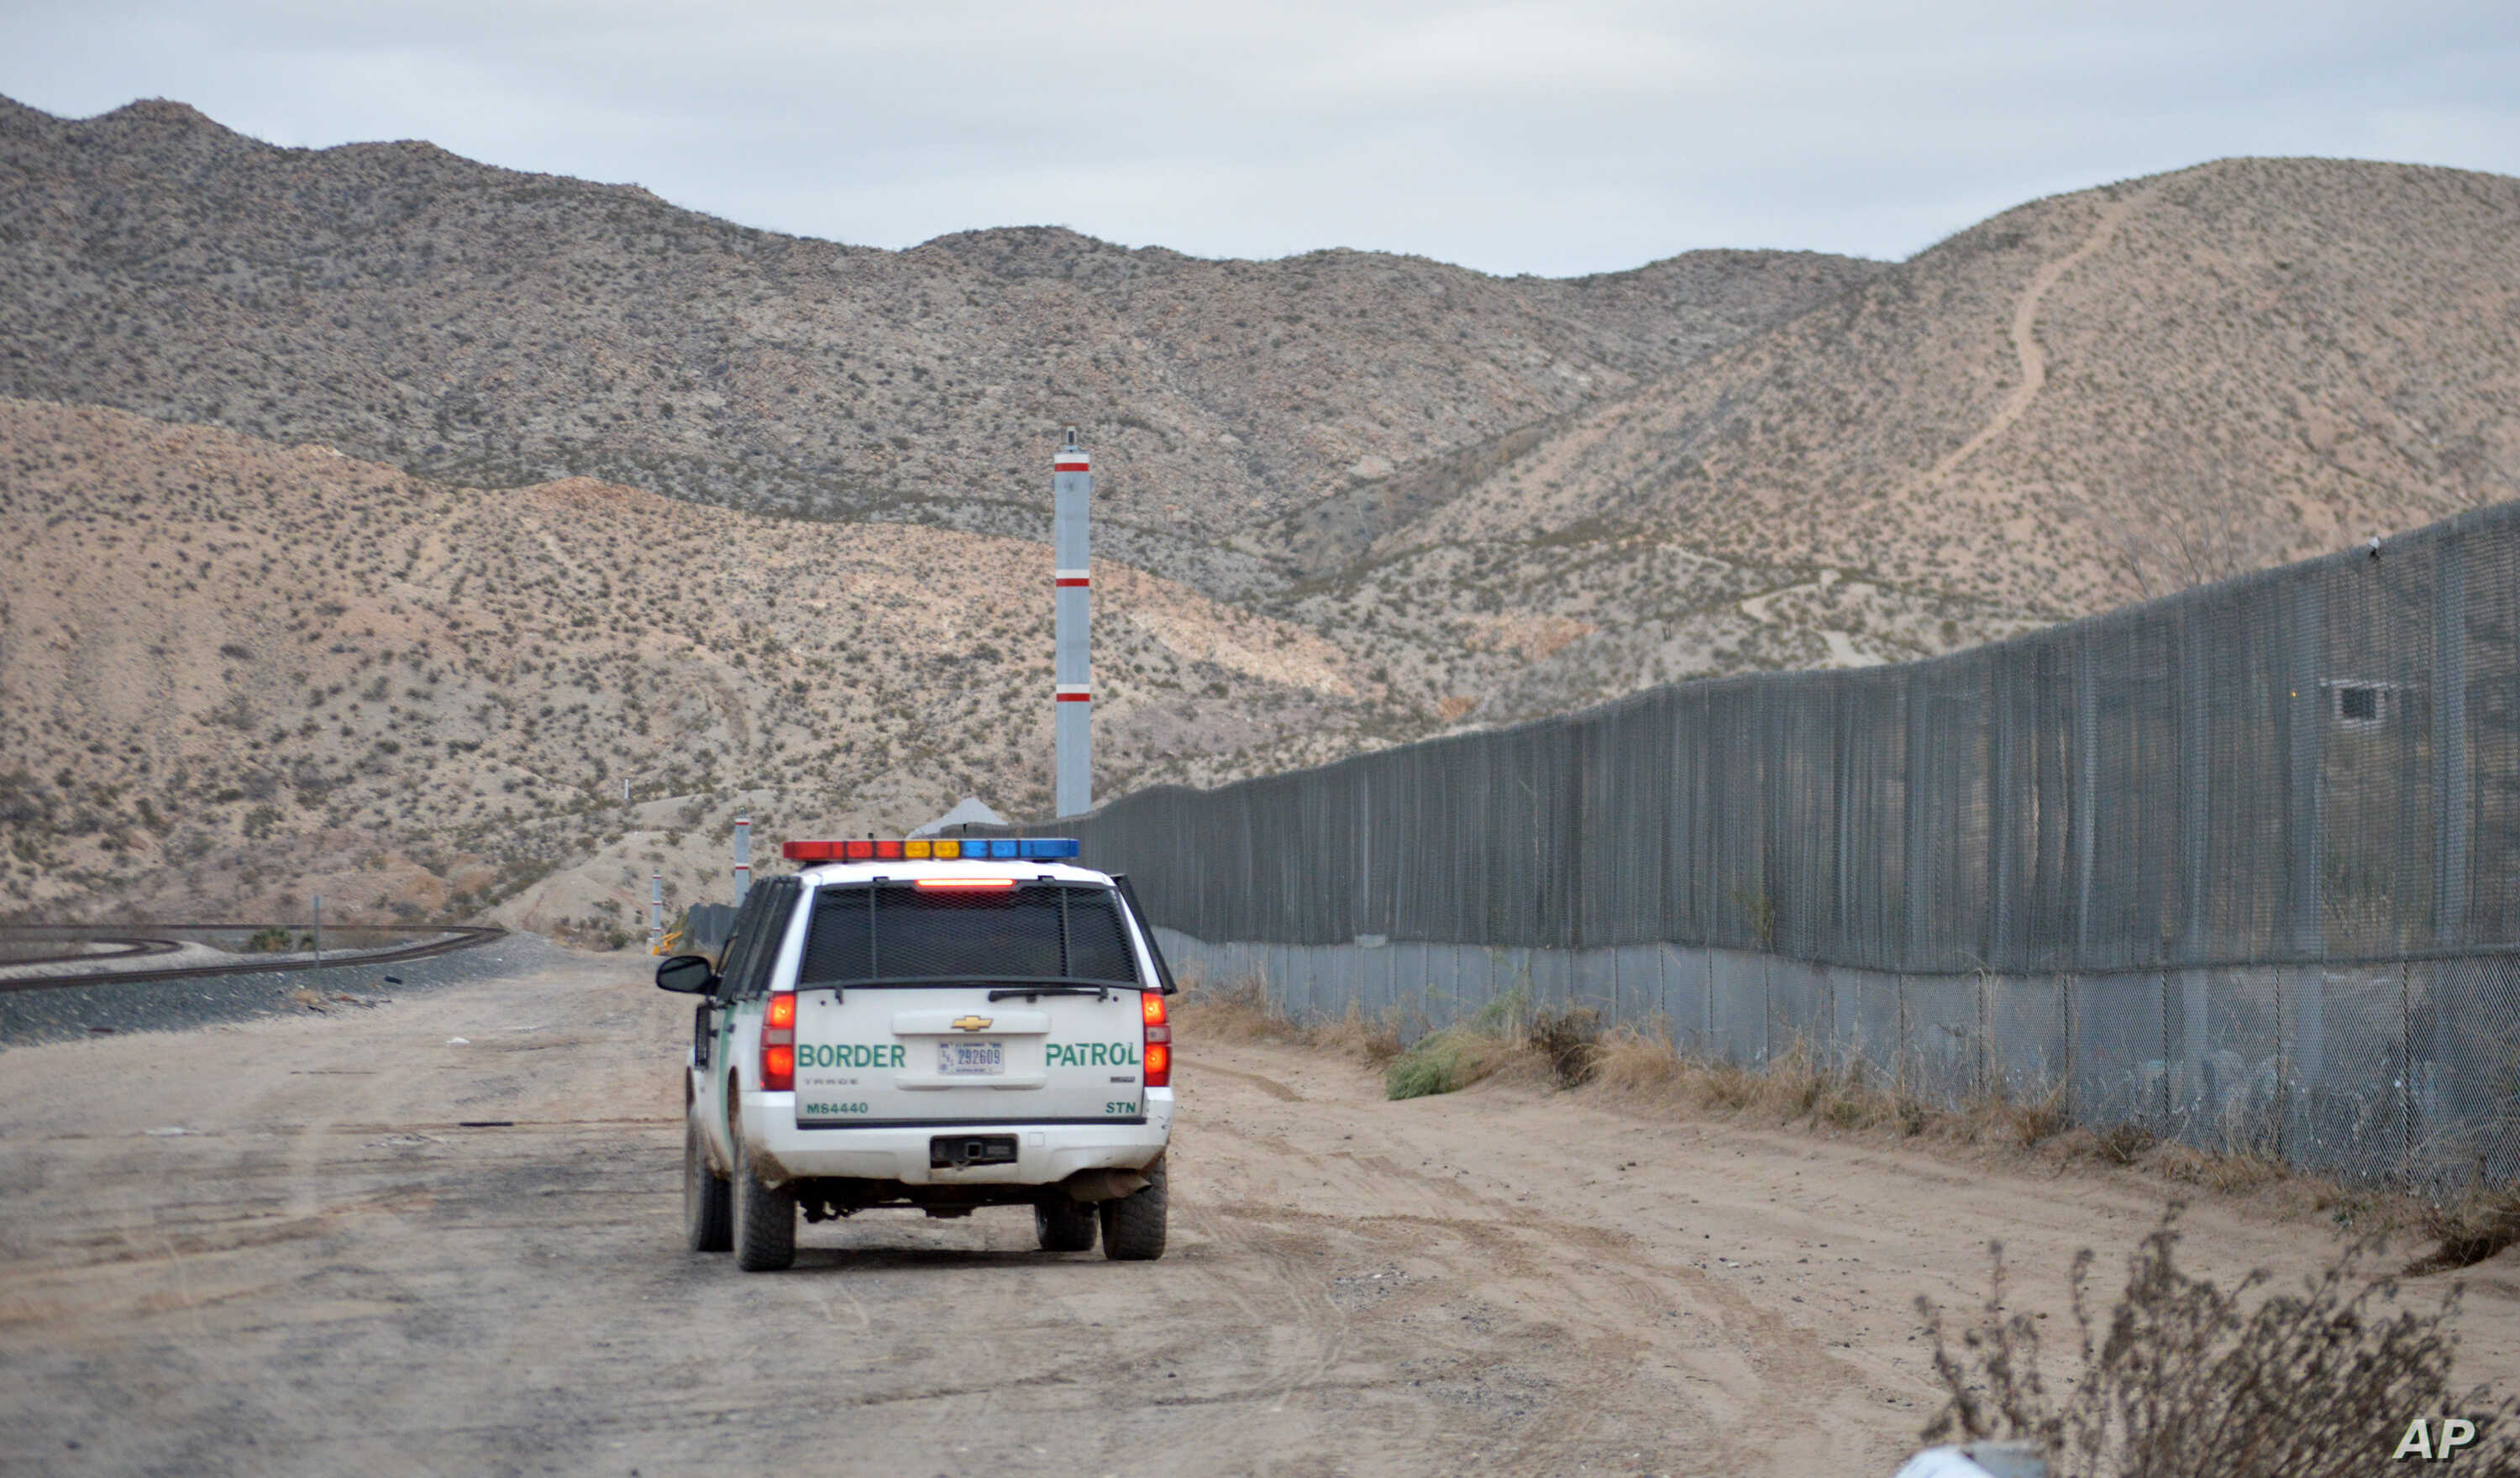 Armed Civilian Border Group Member Arrested in New Mexico | Voice of